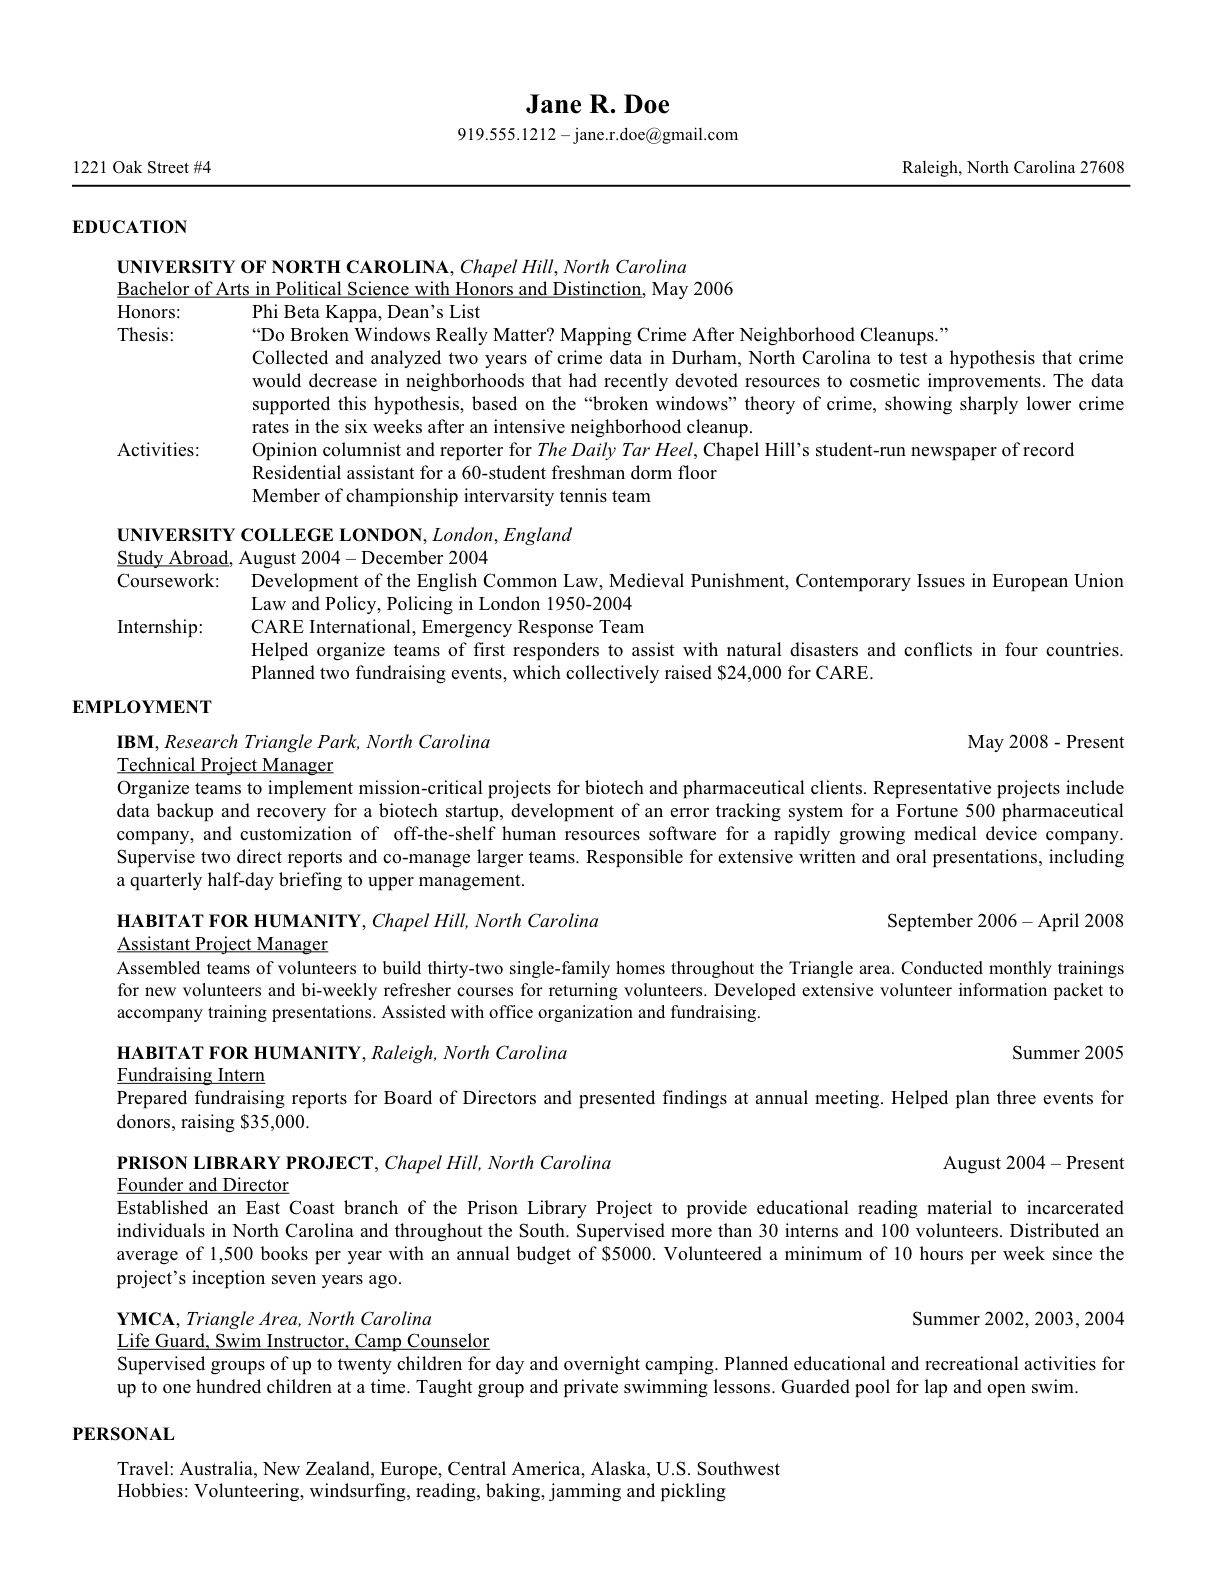 resume examples for law school applications